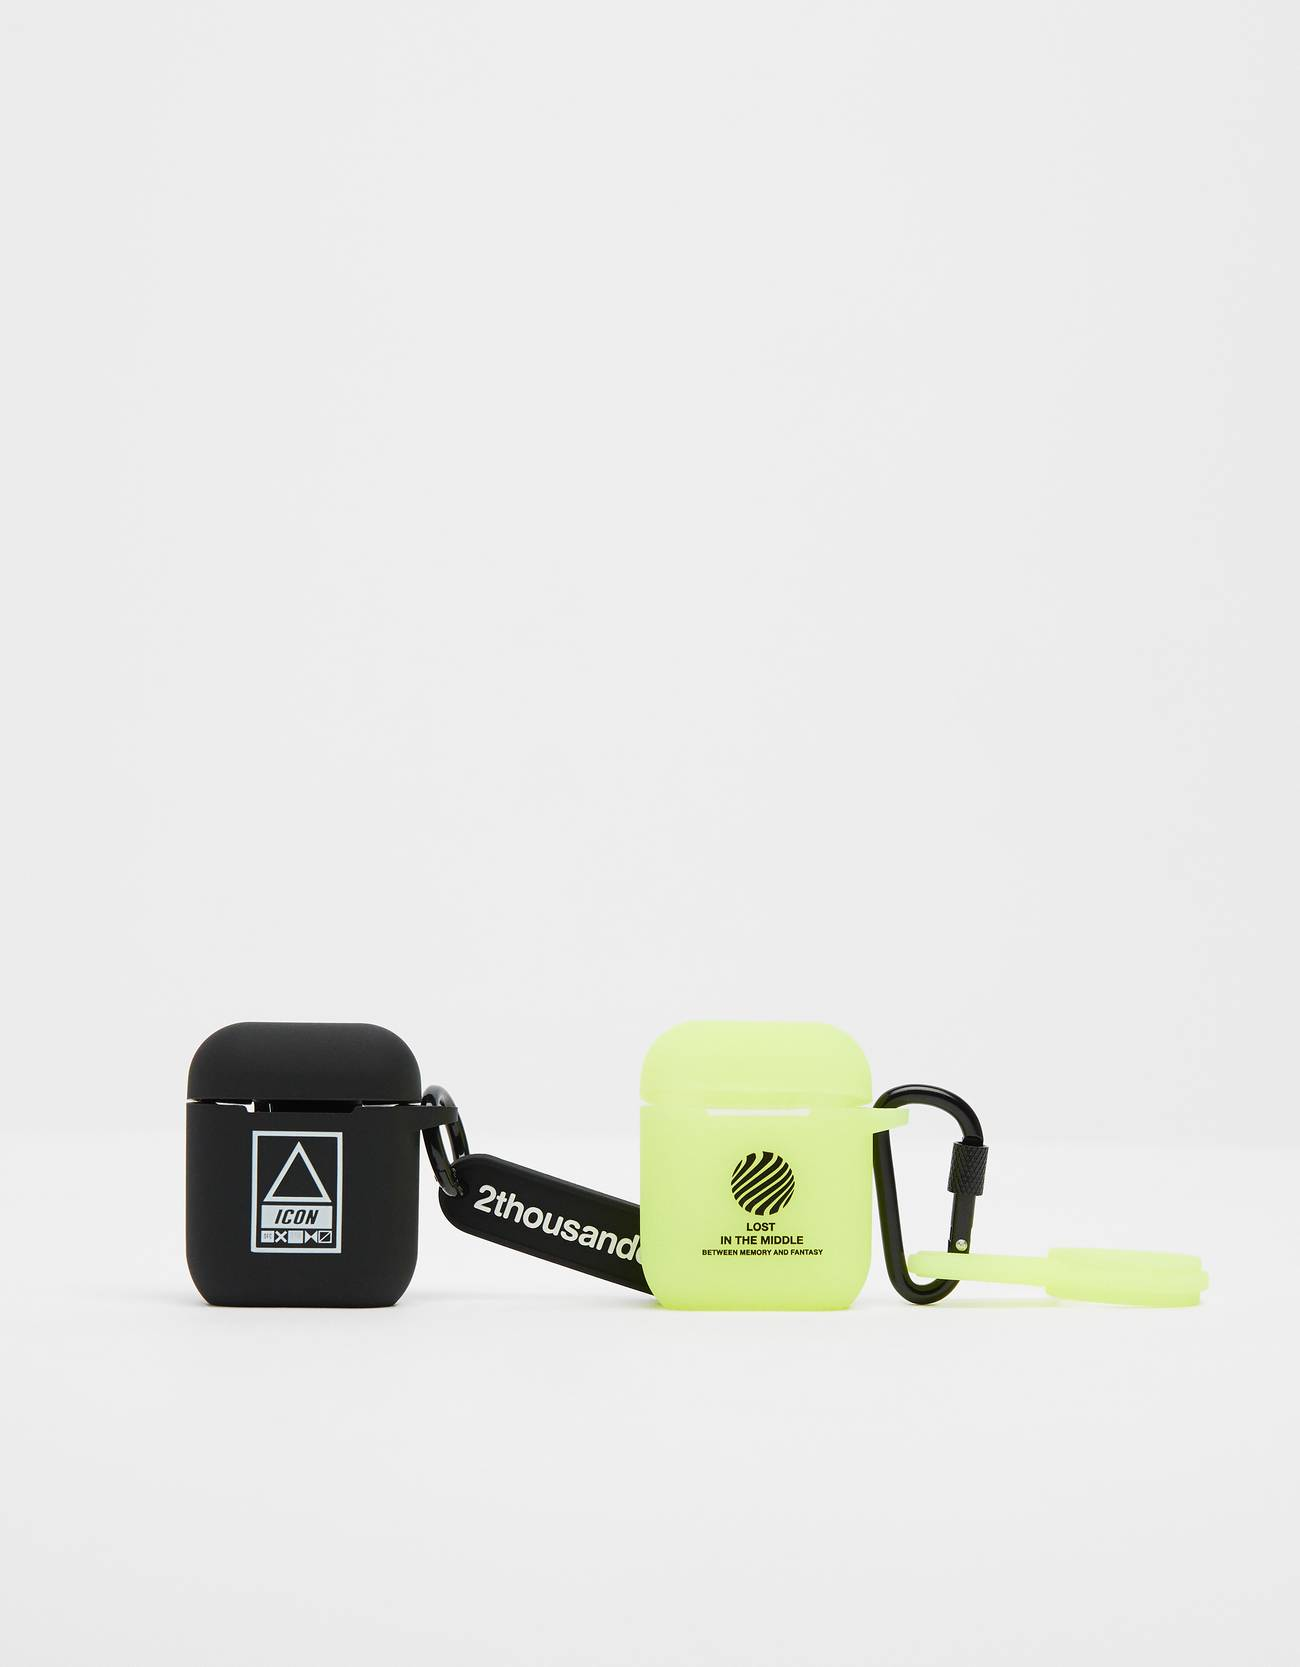 AirPods case pack